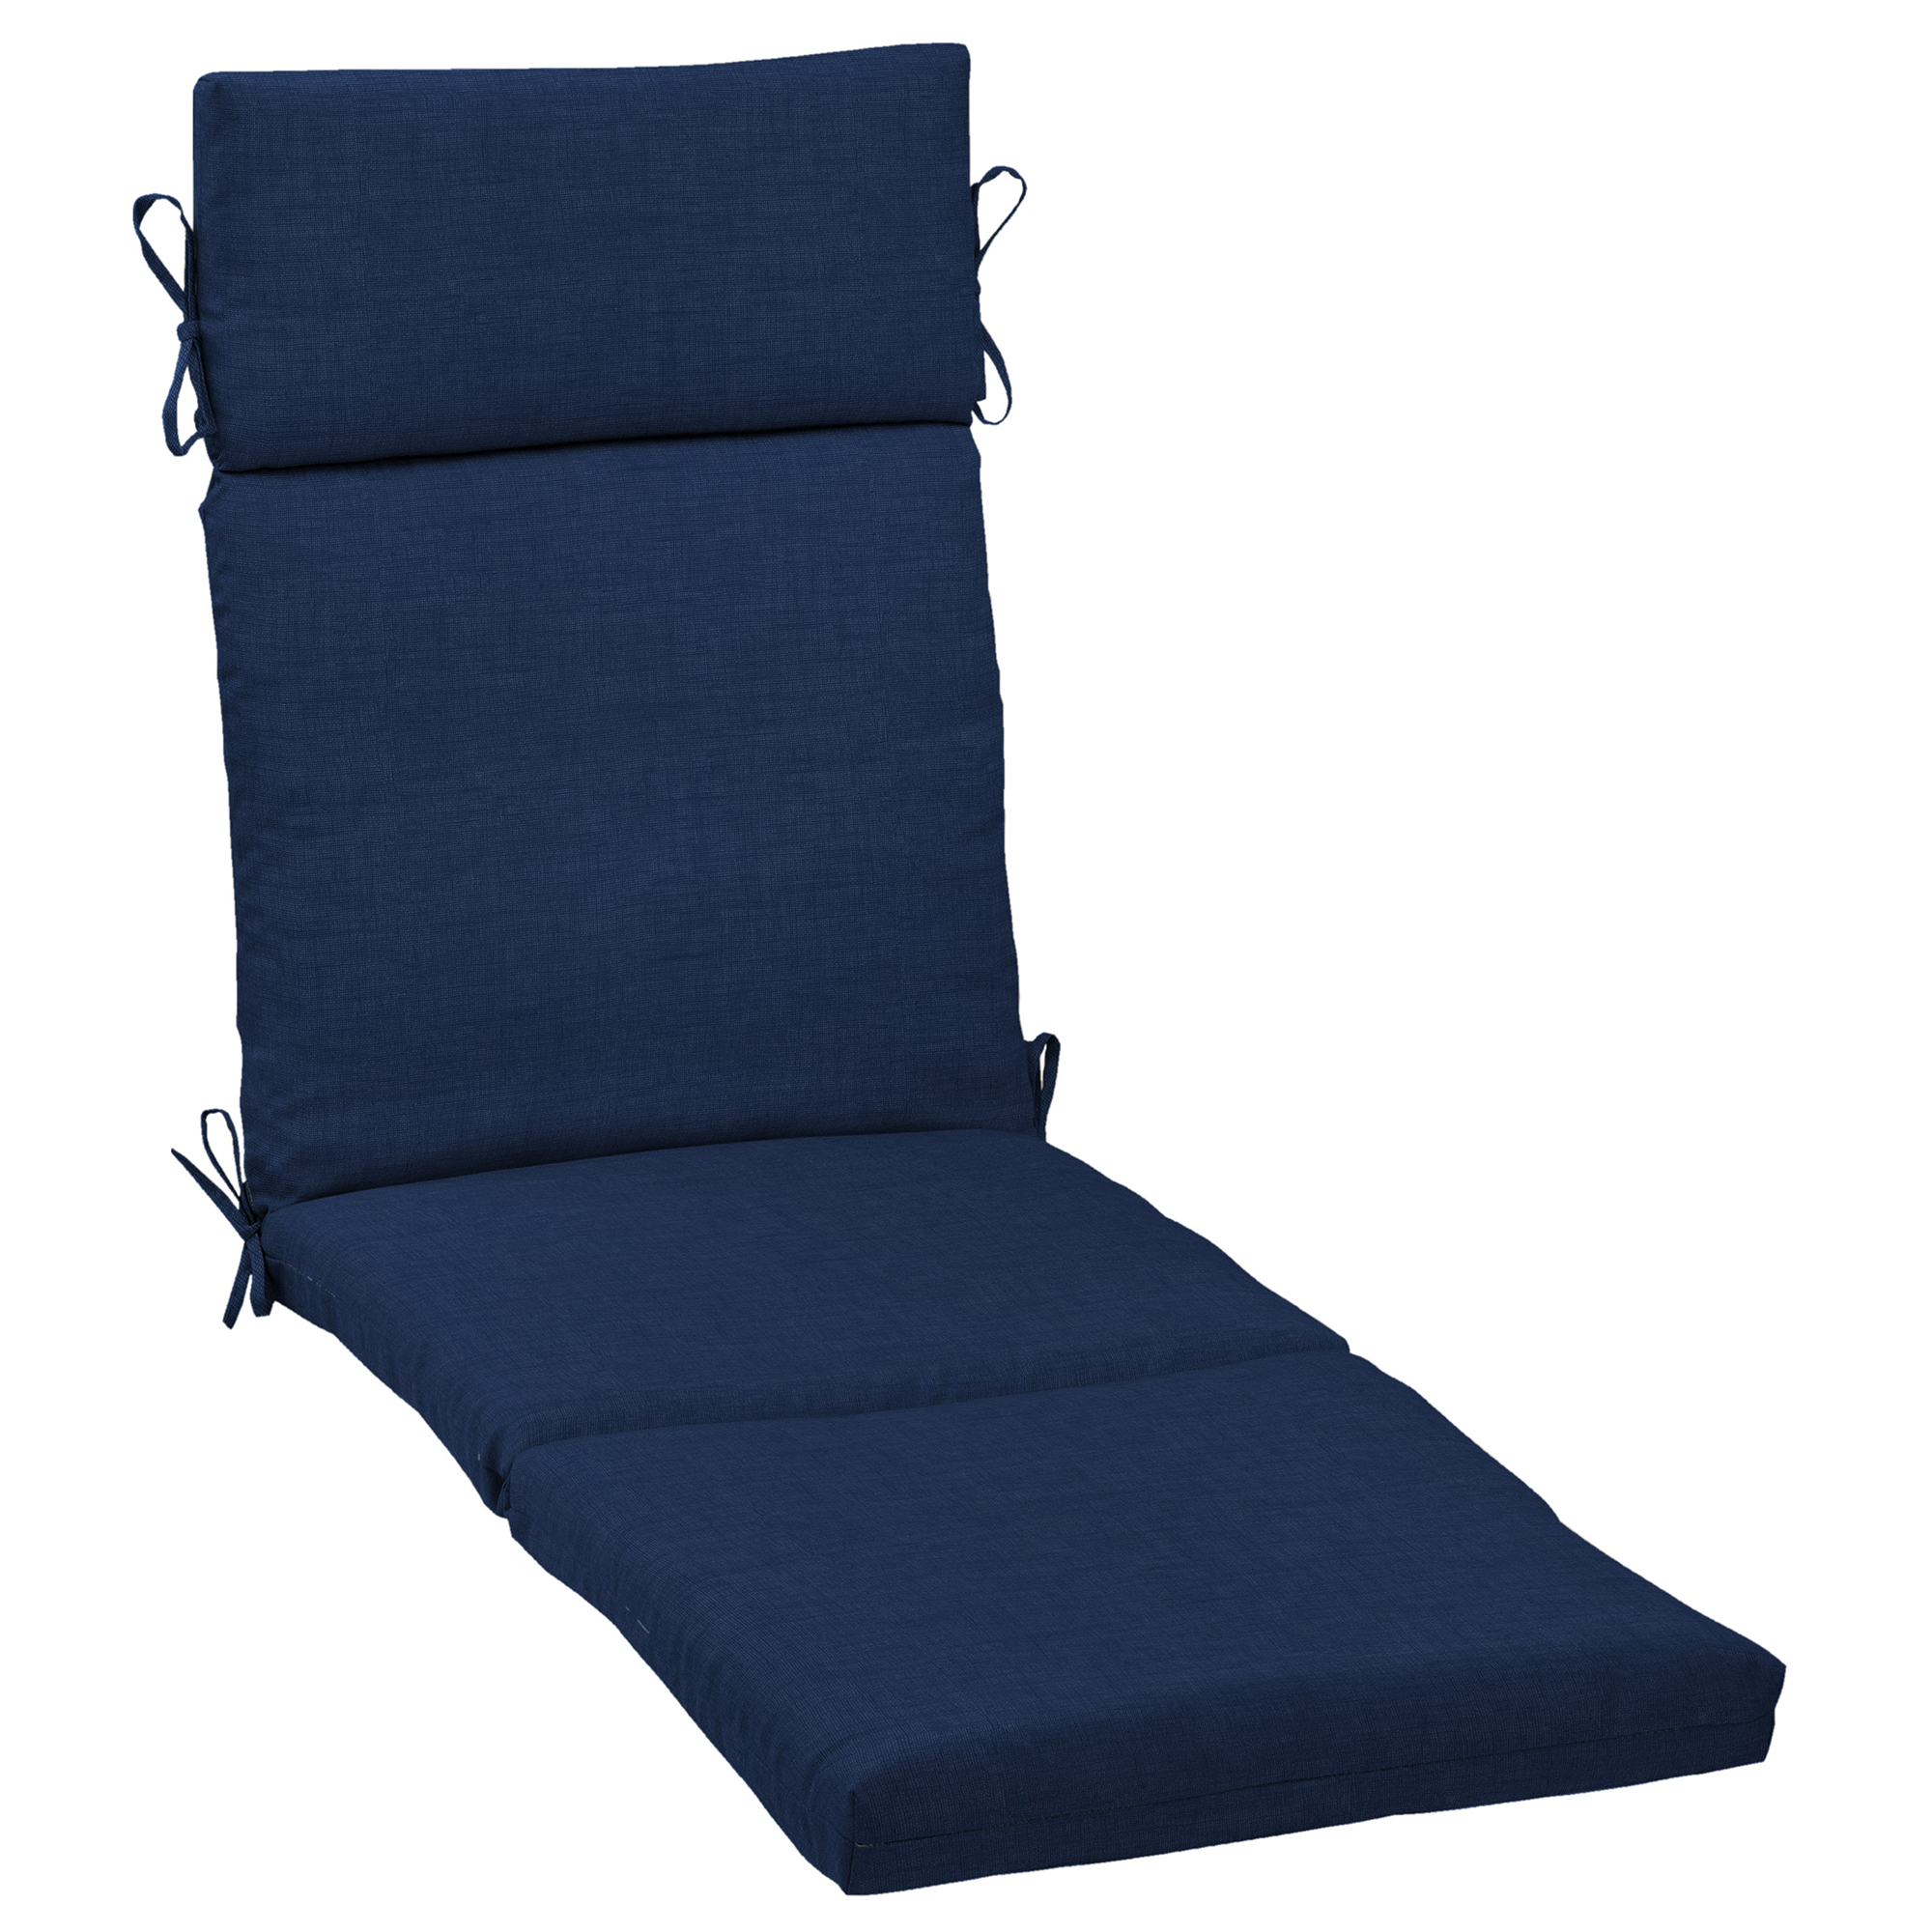 Arden Selections Sapphire Leala 72 x 21 in. Outdoor Chaise Cushion (Walmart)